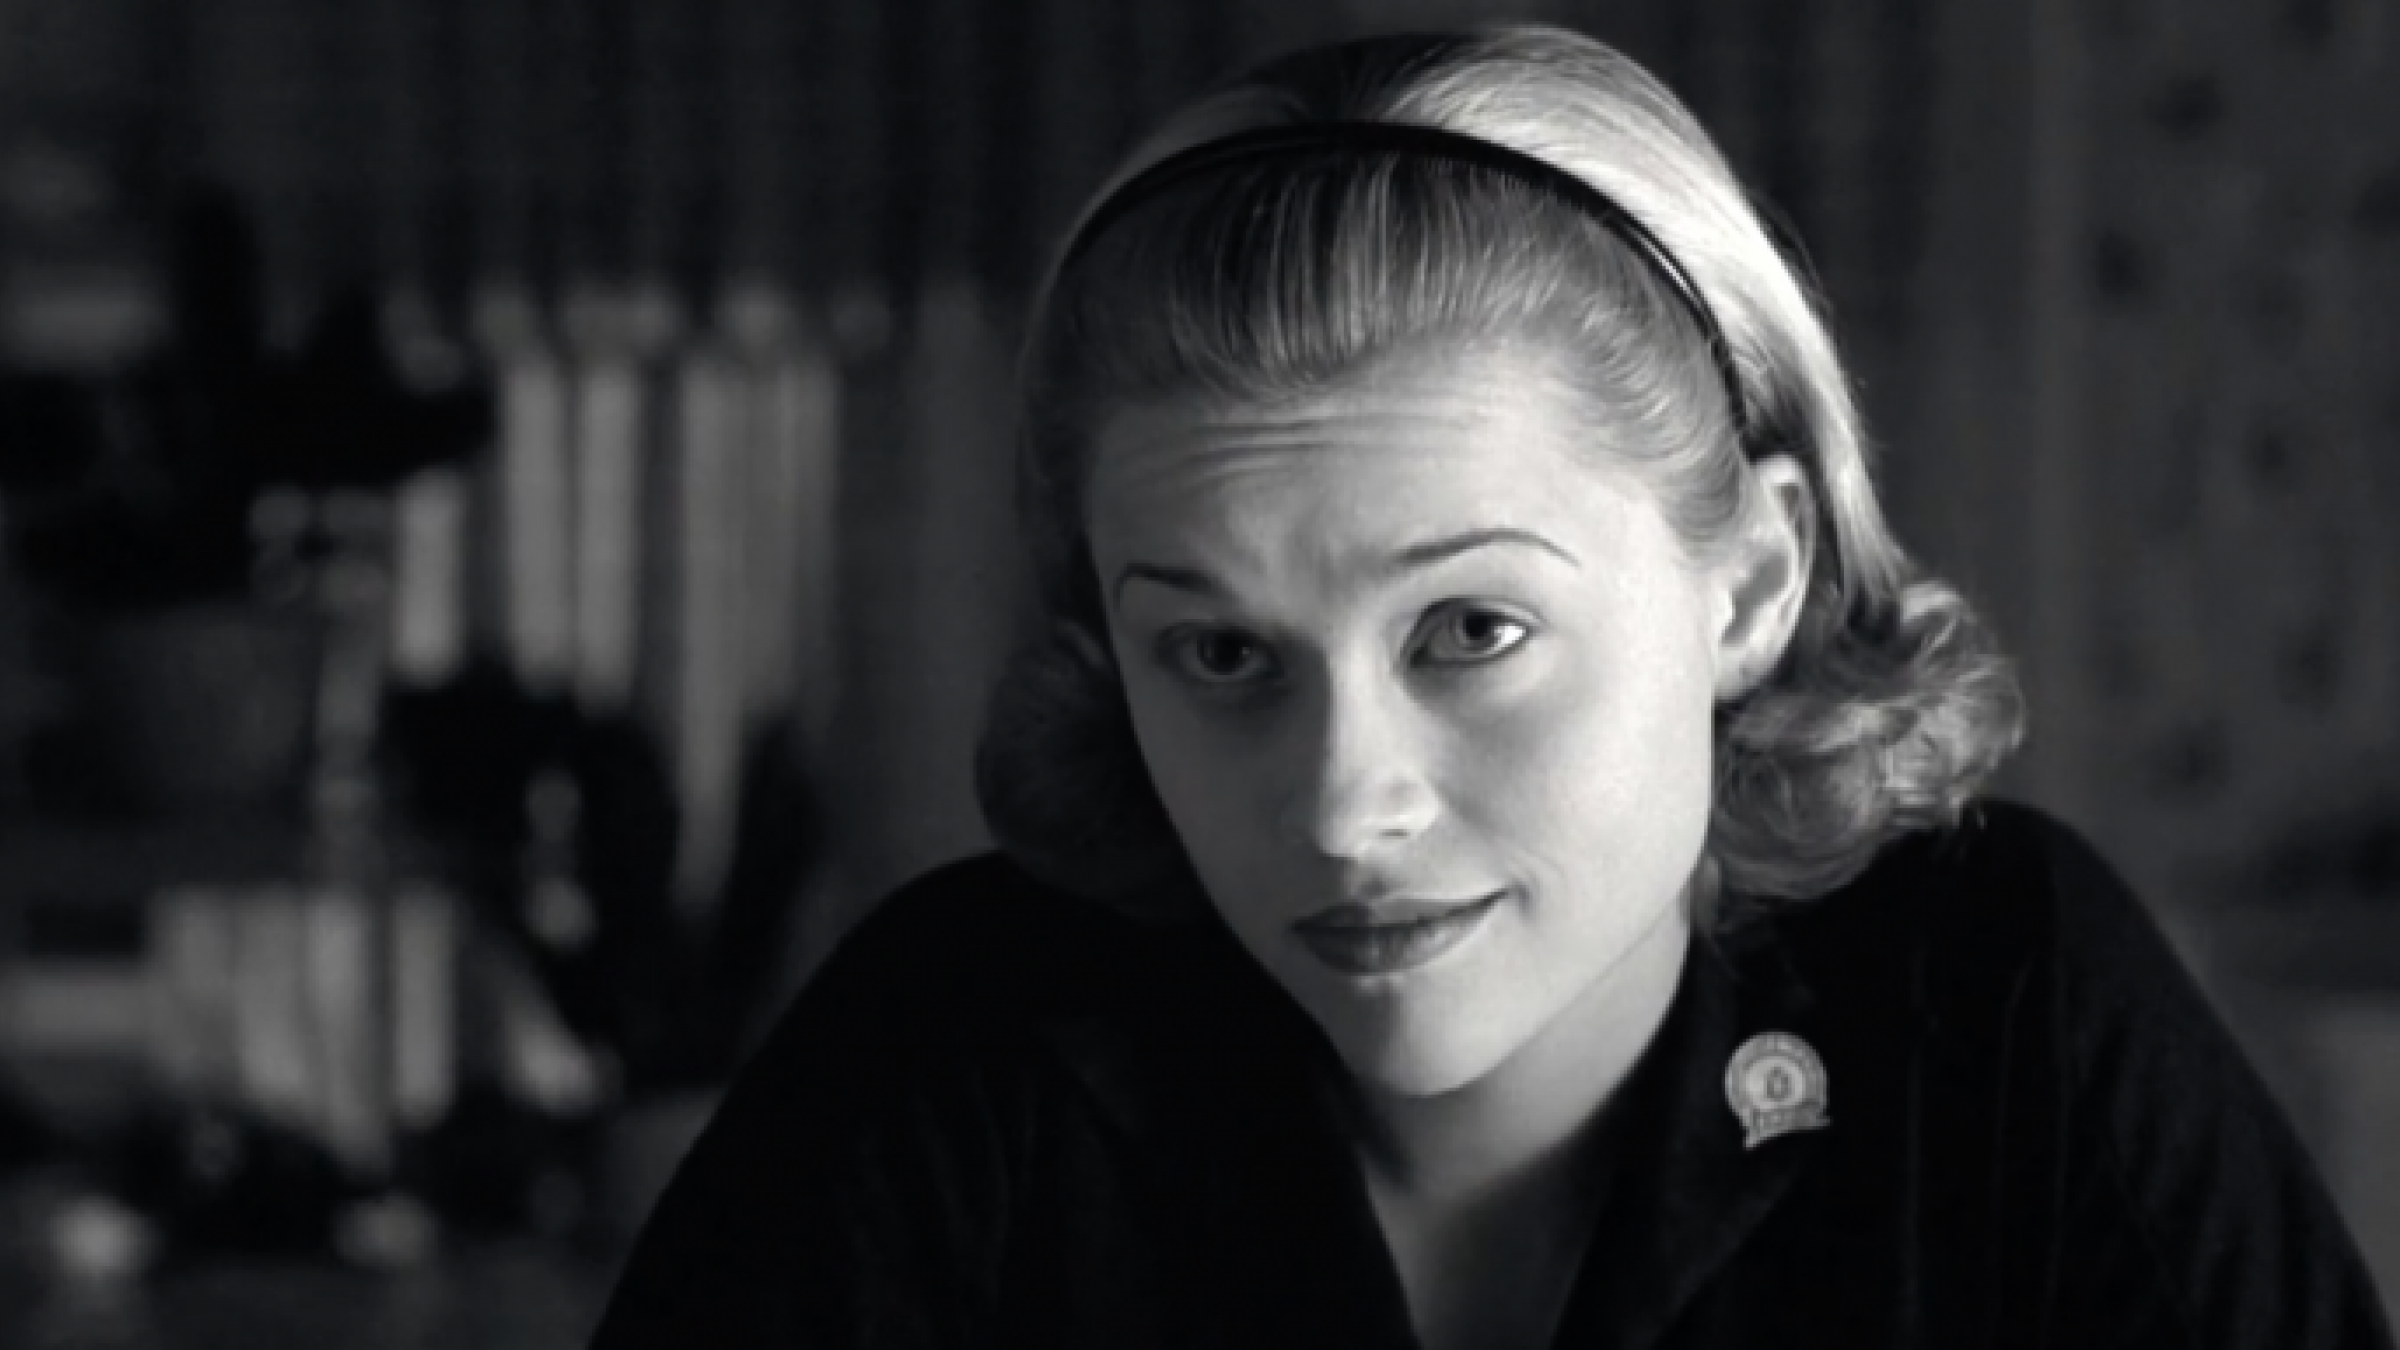 this video essay about pleasantville is pure cinema magic